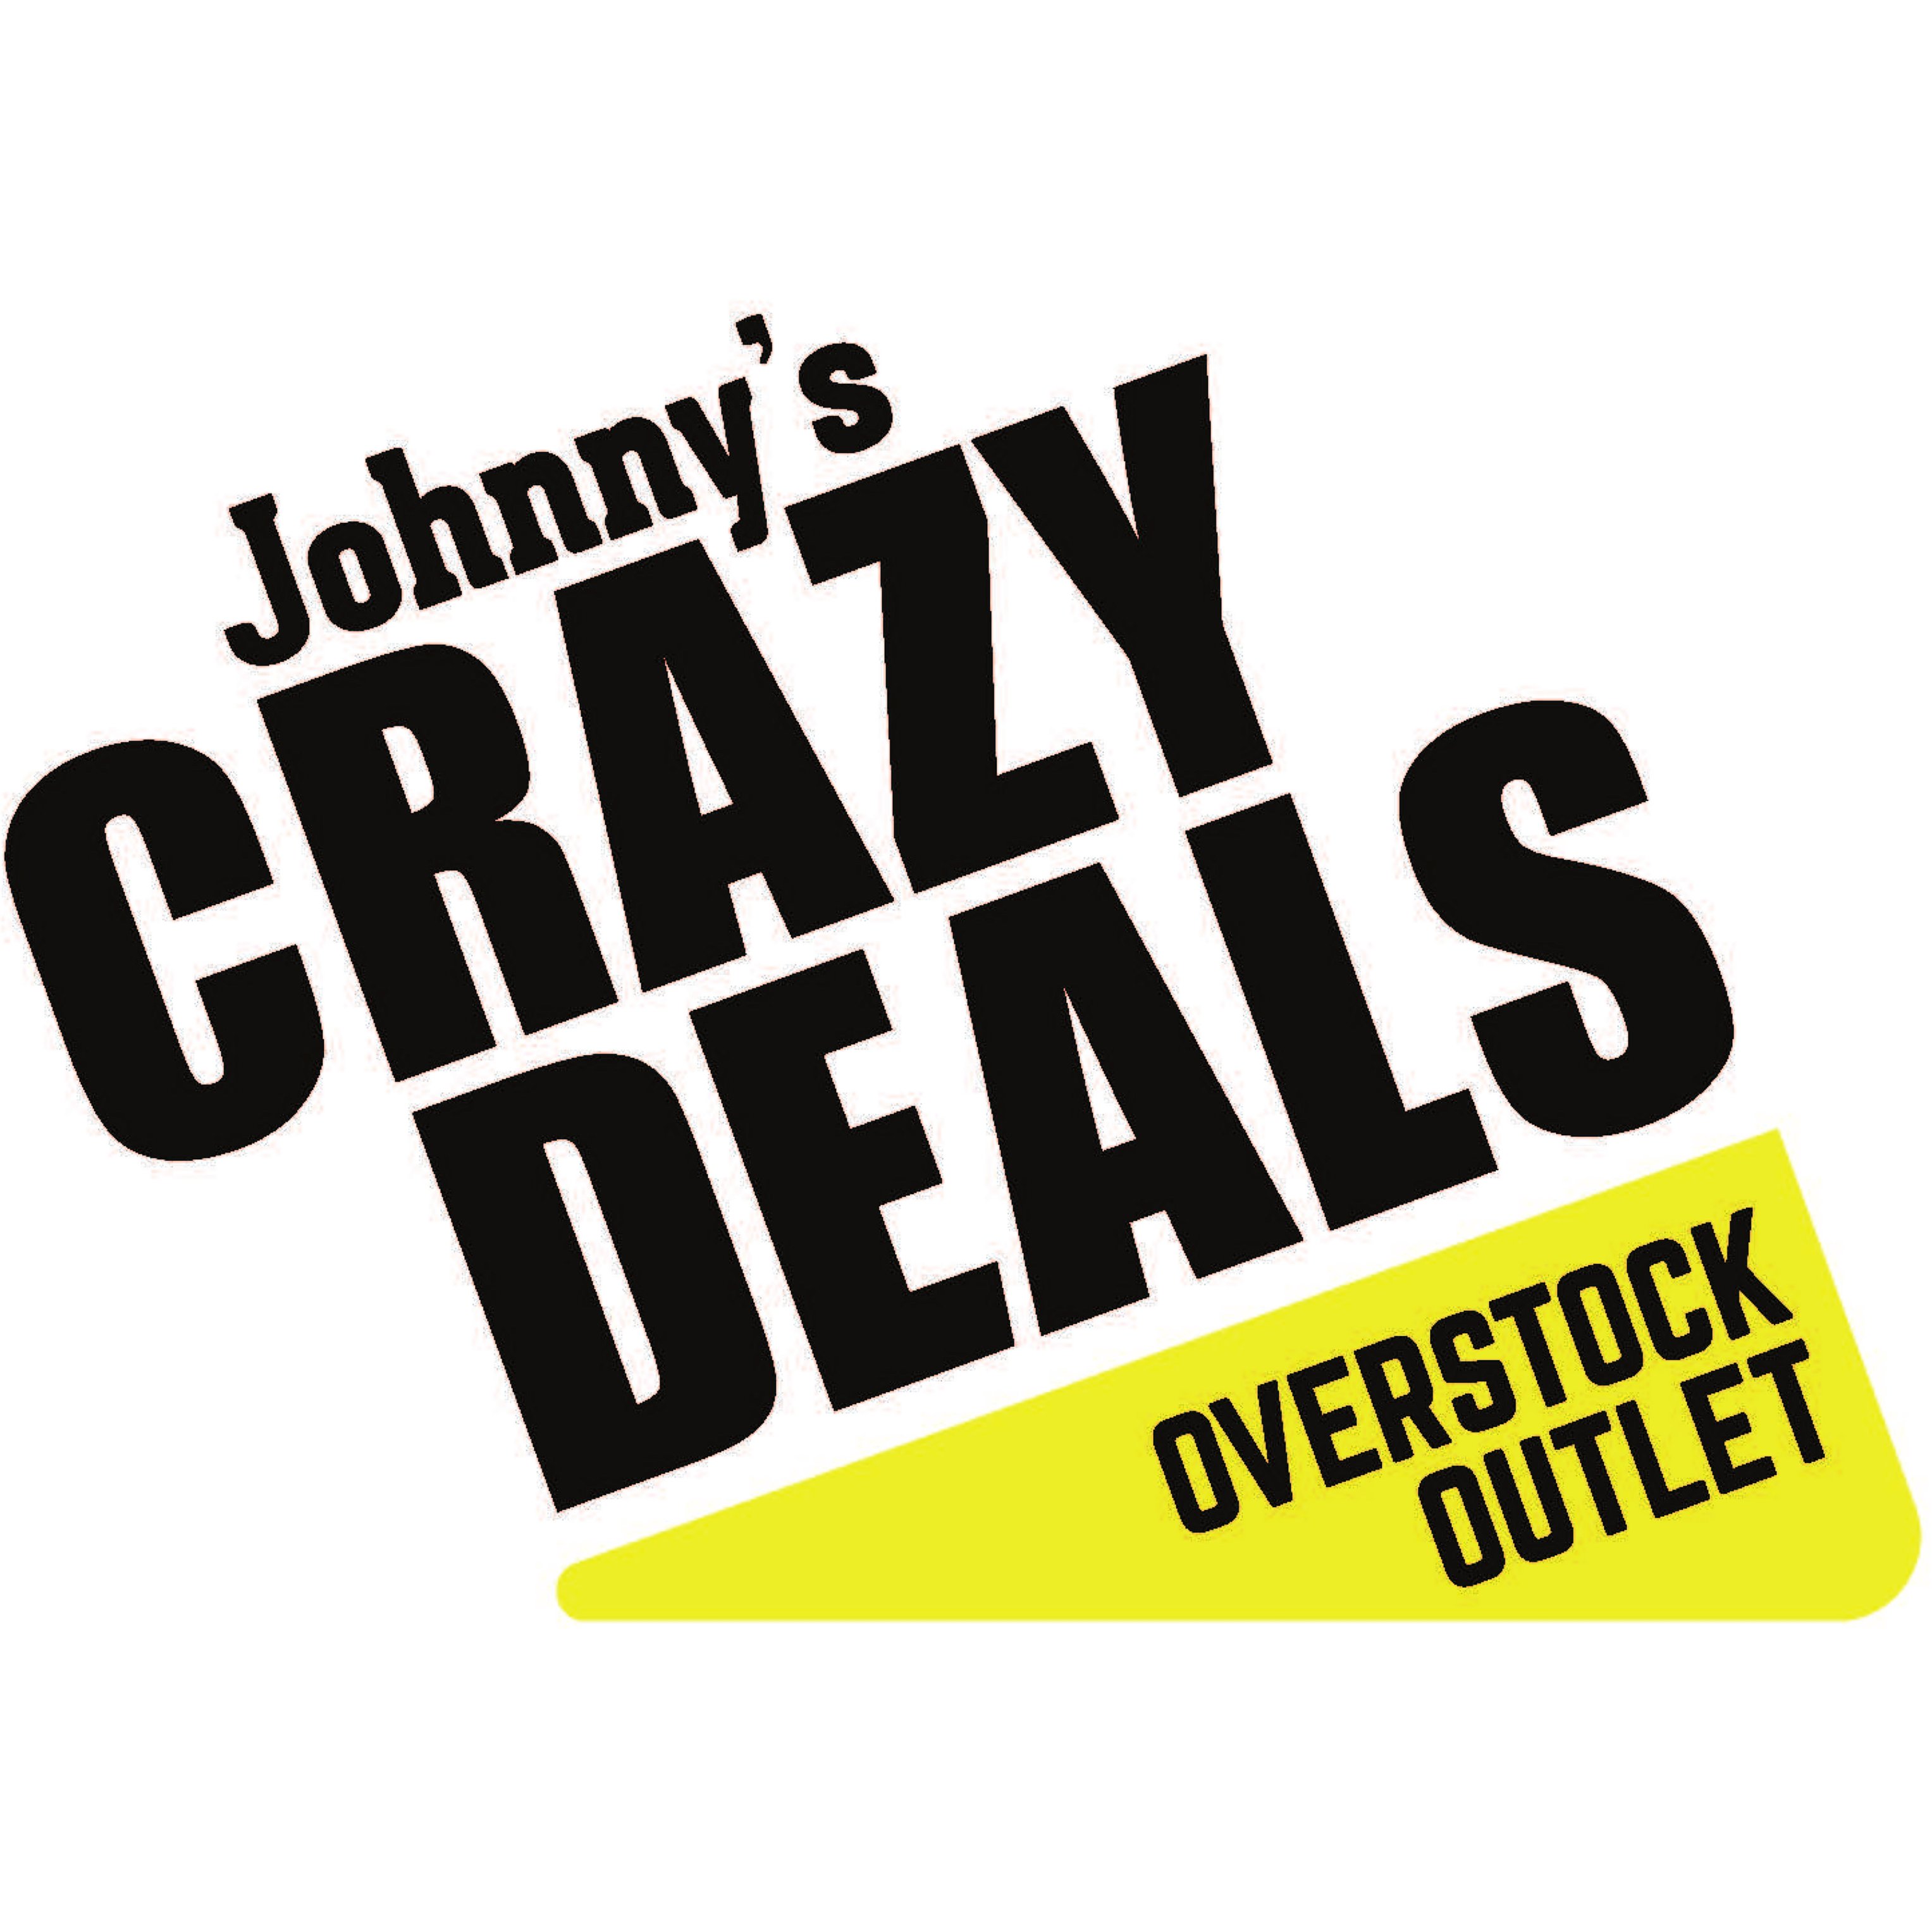 Johnny S Crazy Deals In Saint Peters Mo Furniture 636